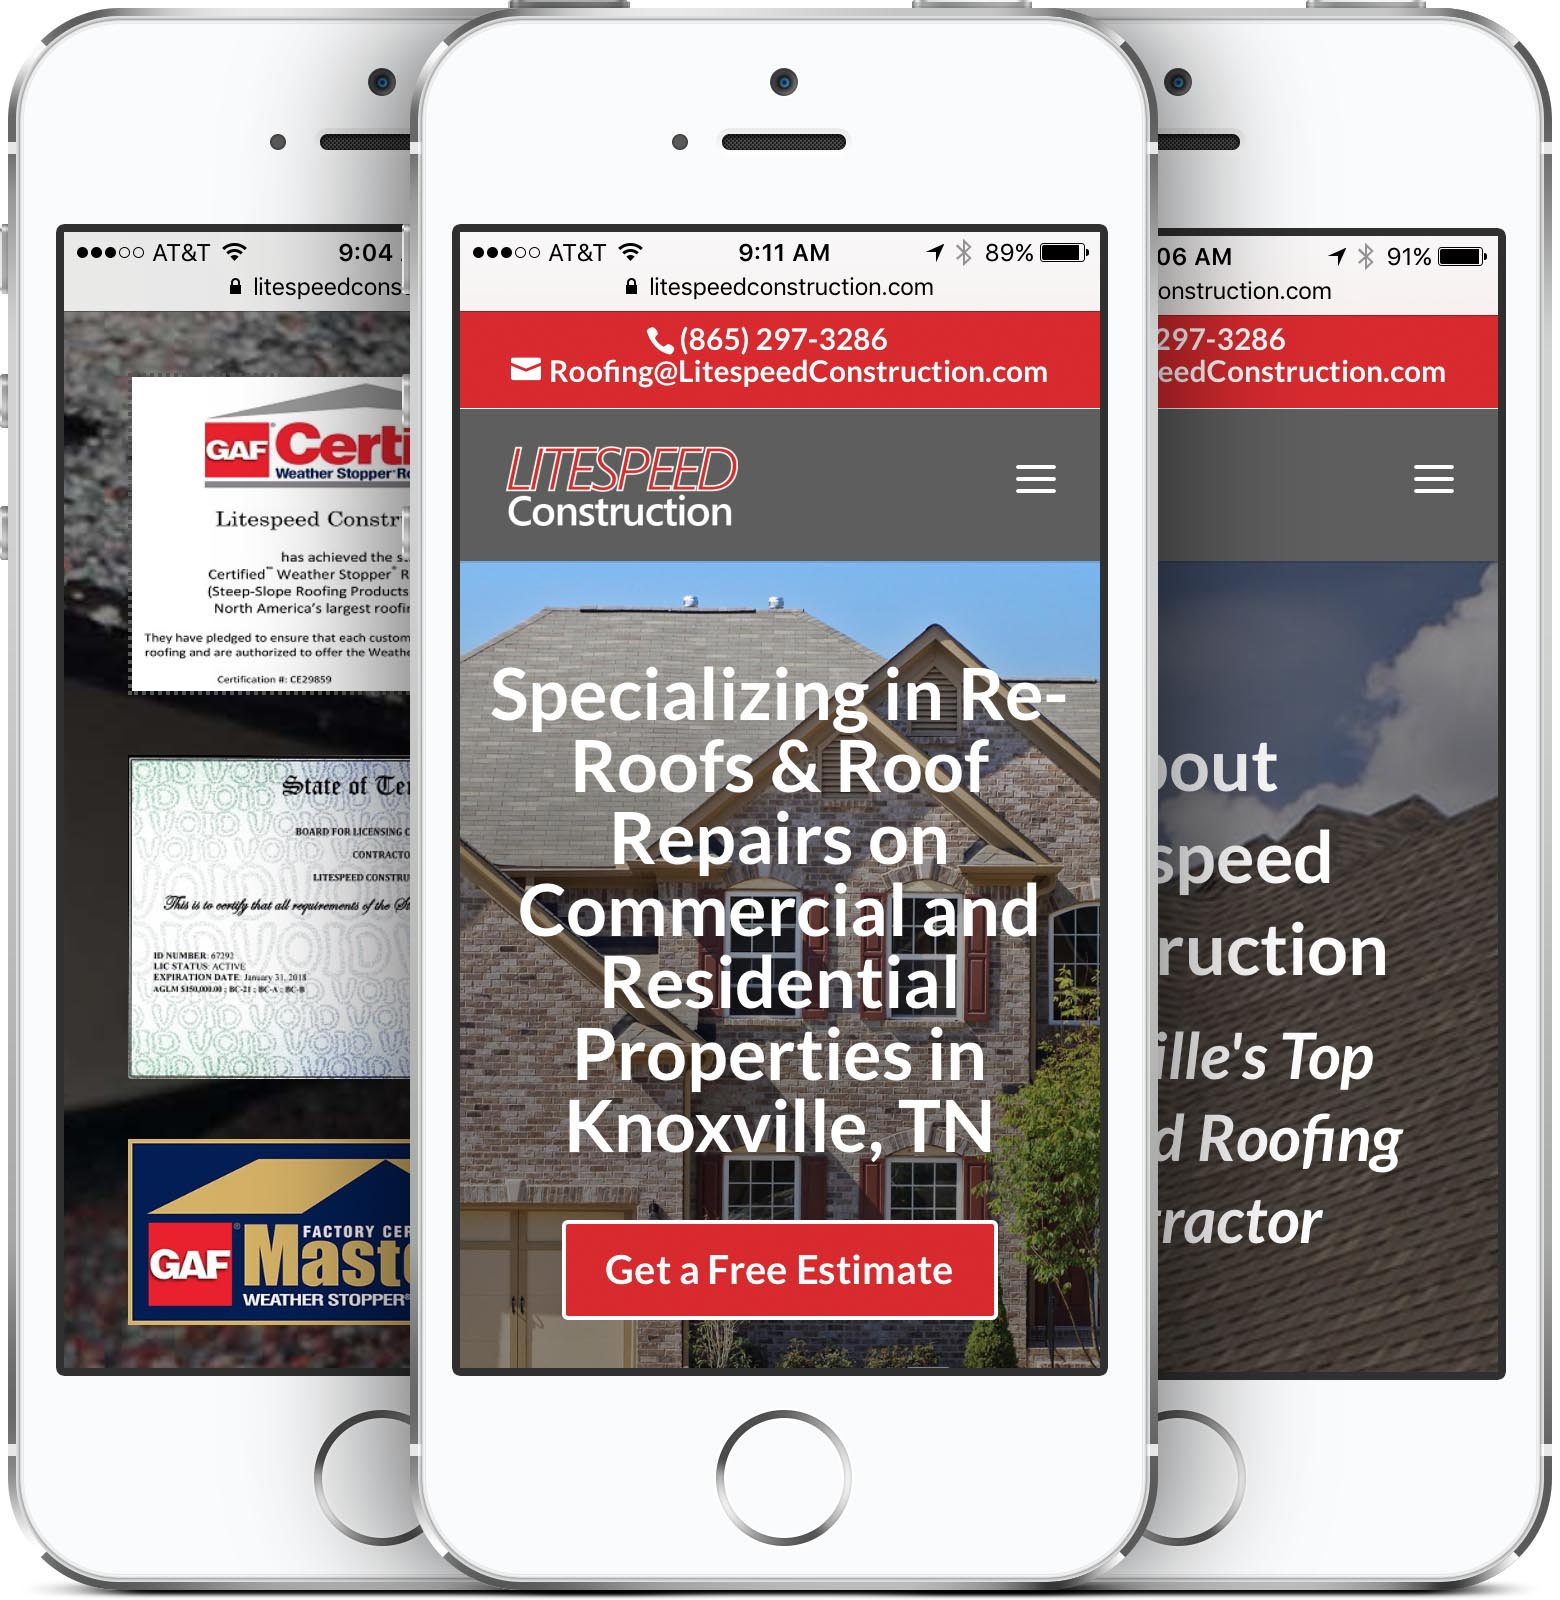 Litespeed Construction Mobile-Friendly Web Design